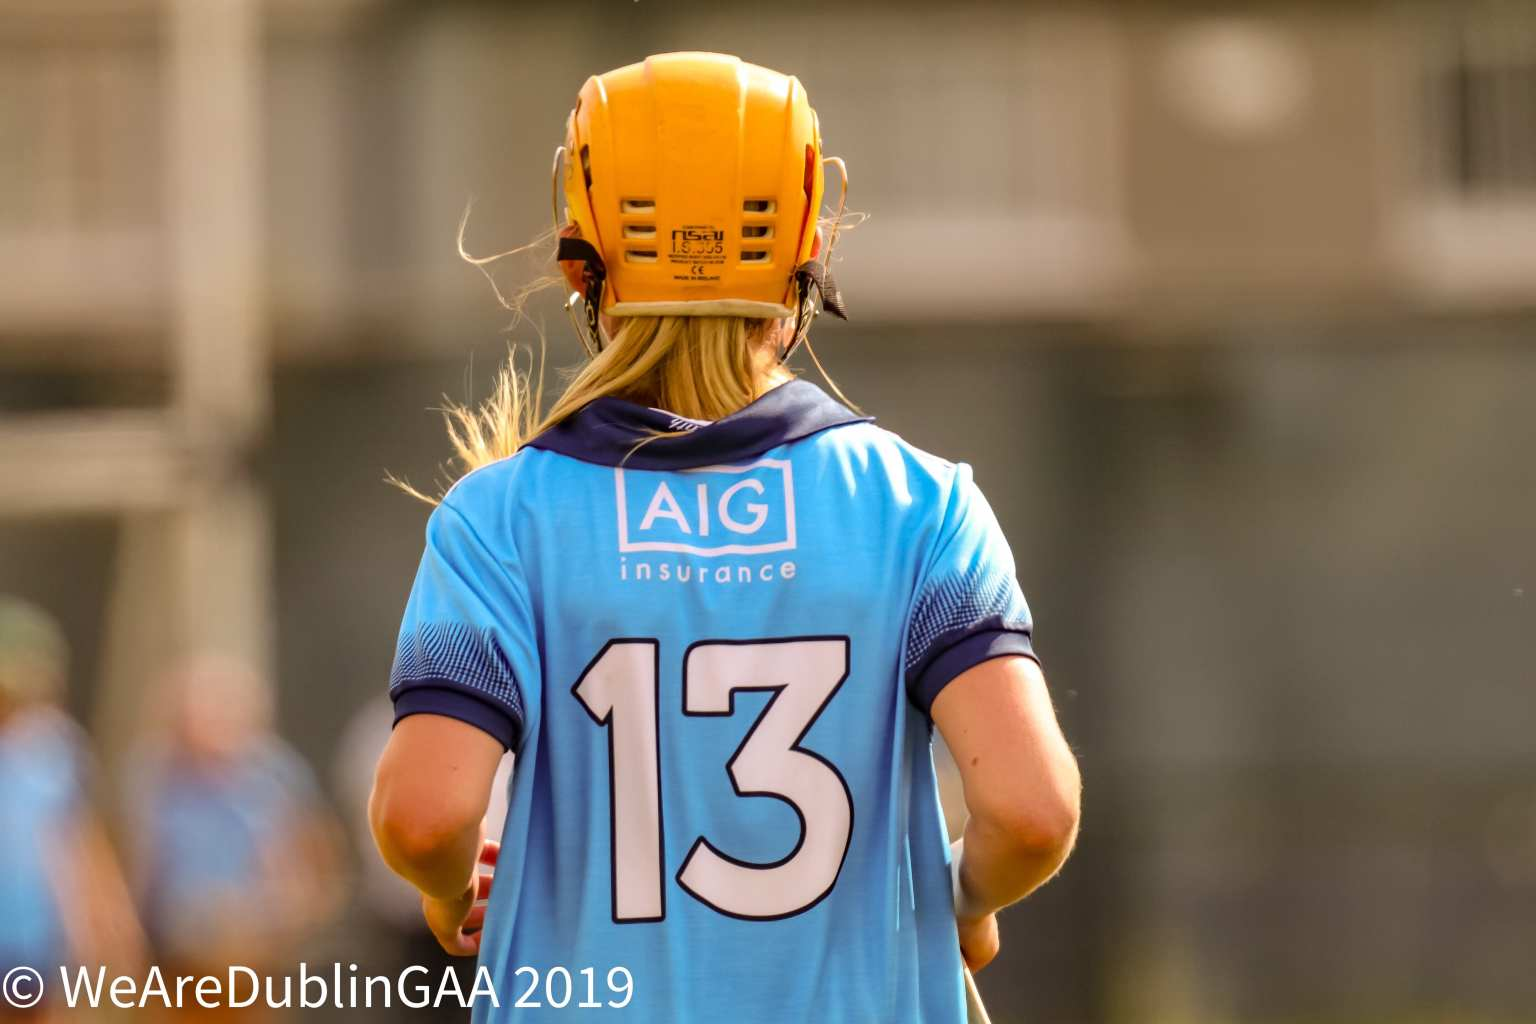 A member of the Dublin Camogie Intermediates team with number 13 on the back of her jersey the Dublin Inters Team is announced to play Westmeath